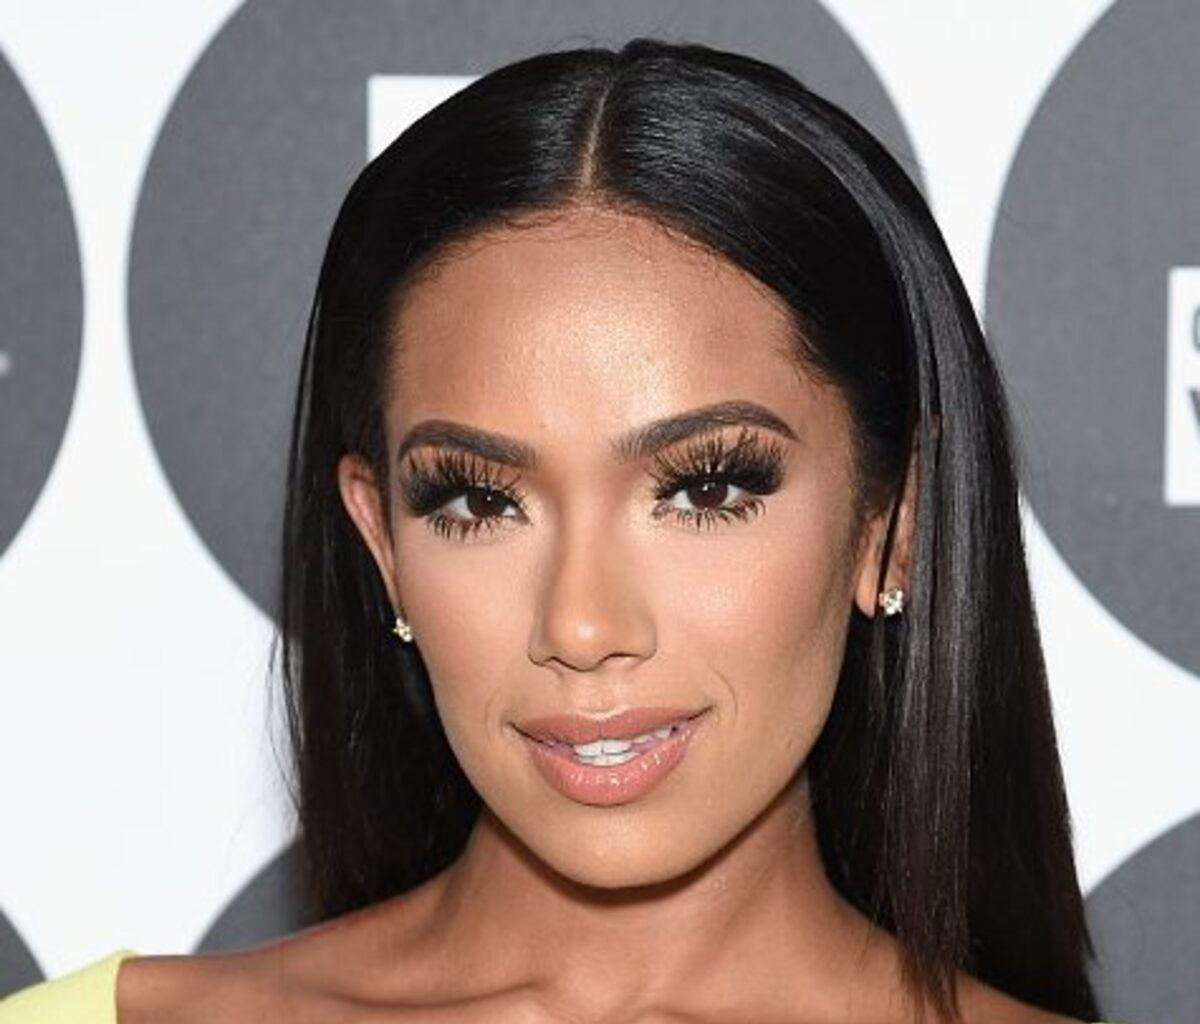 Erica Mena Drops New Merch And Impresses Fans - Check Out Her Racy Looks!